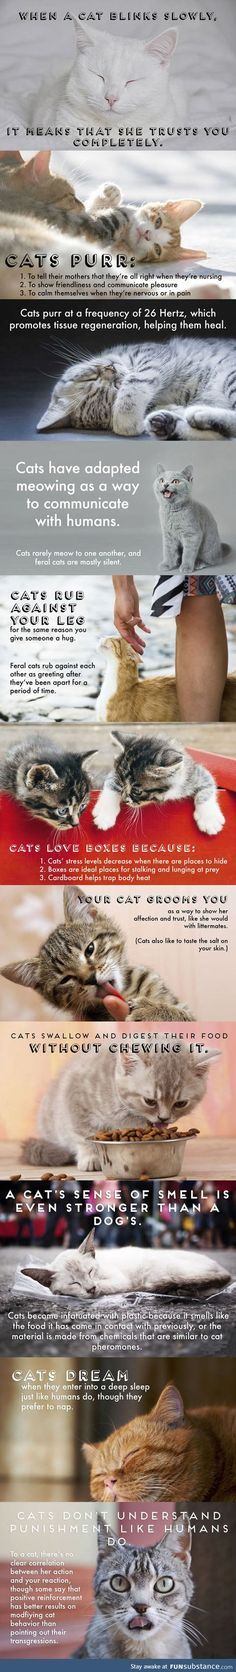 Funny Cat Facts cute animals cat cats adorable animal kittens pets kitten facts funny animals funny cats by estelle I Love Cats, Cute Cats, Funny Cats, Funny Animals, Cute Animals, Animals And Pets, Animals Planet, Animals Images, Crazy Cat Lady